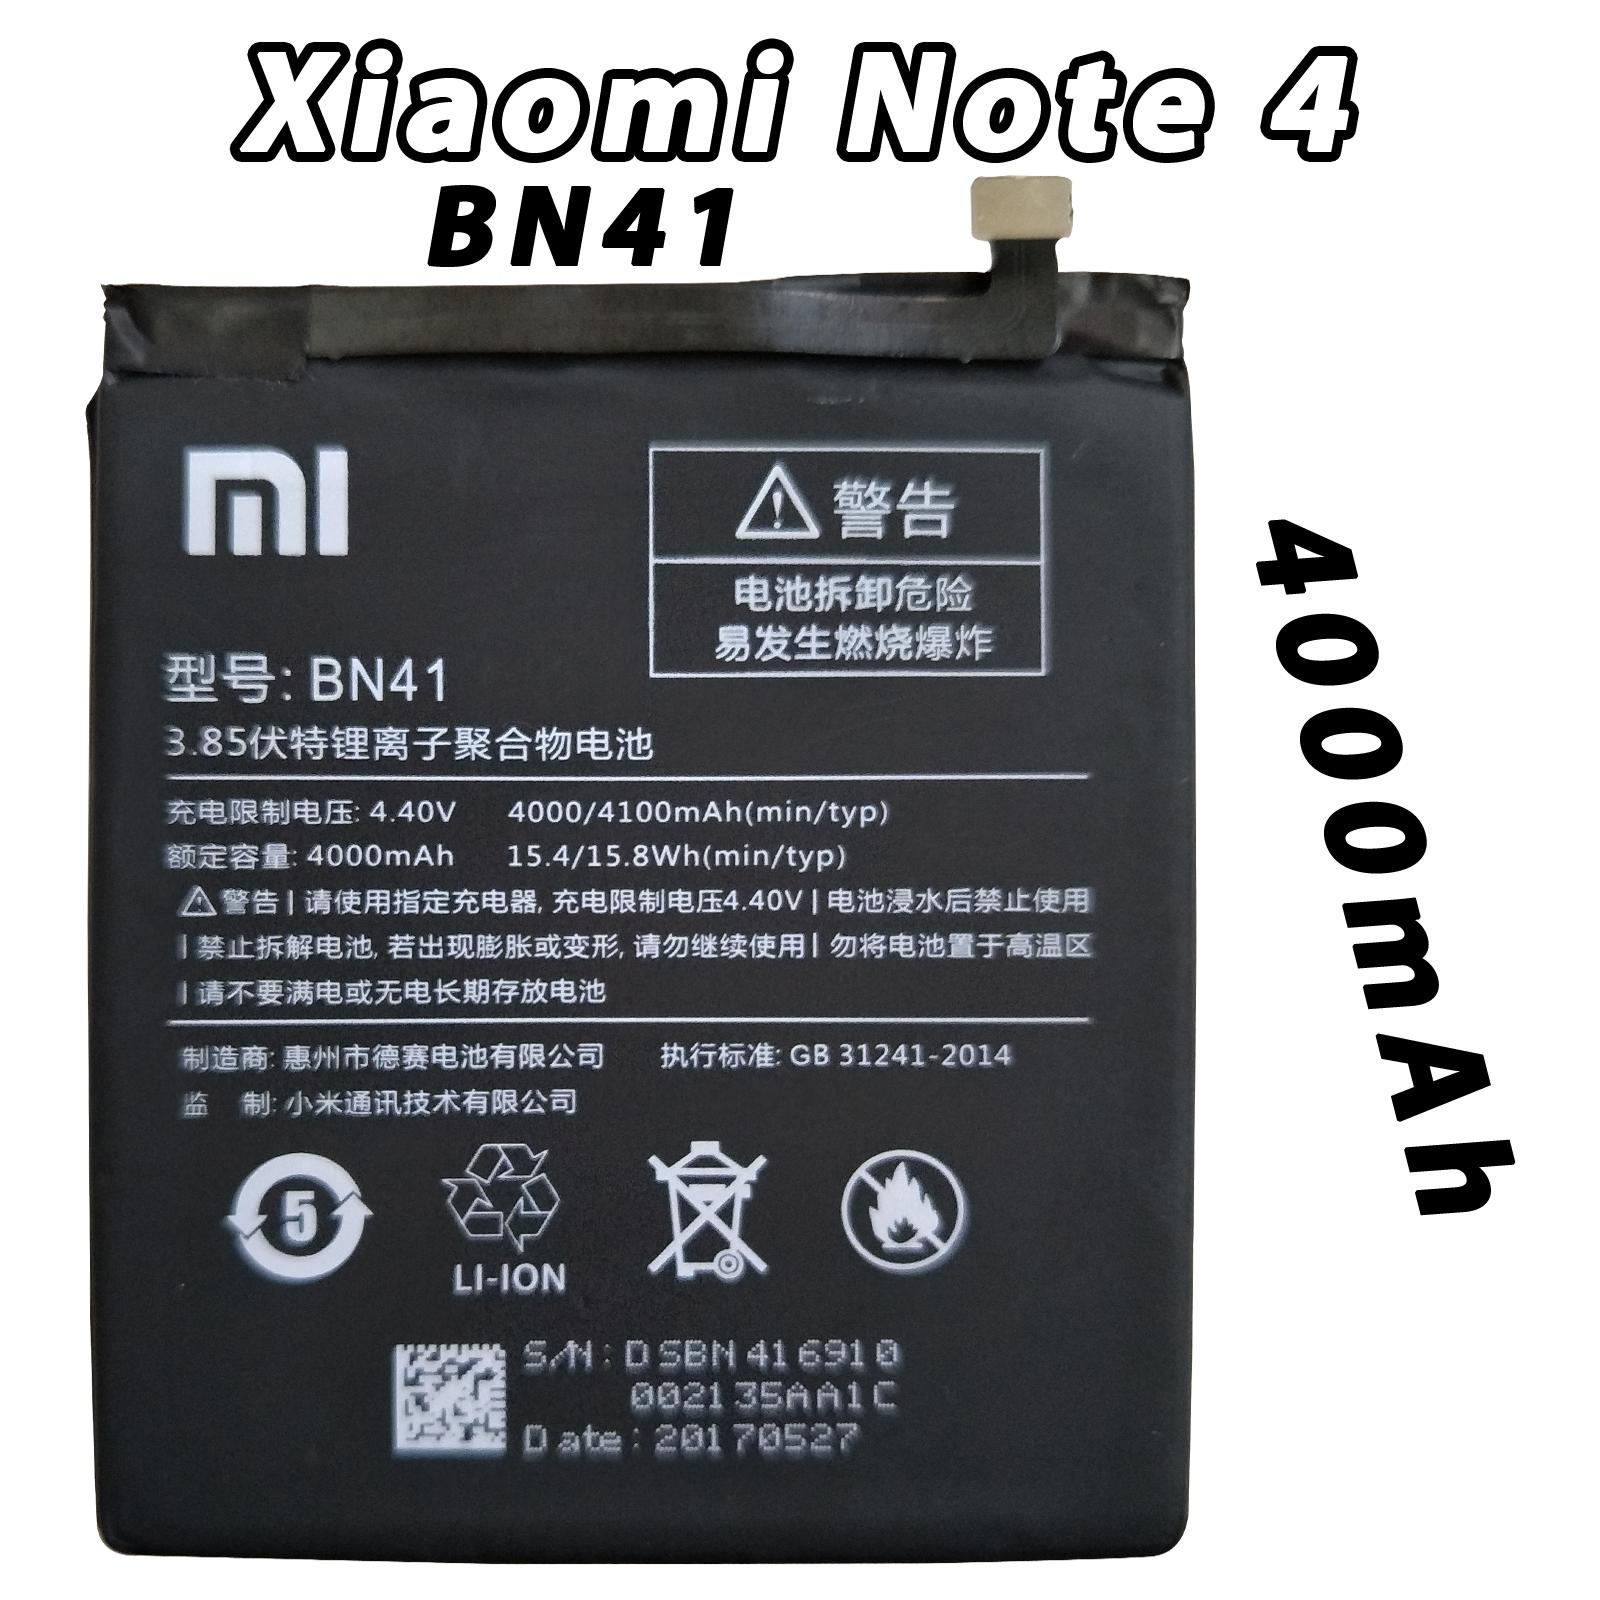 New Internal Battery For Xiaomi Redmi Note 4 Bn41 4000mah By Click2order.